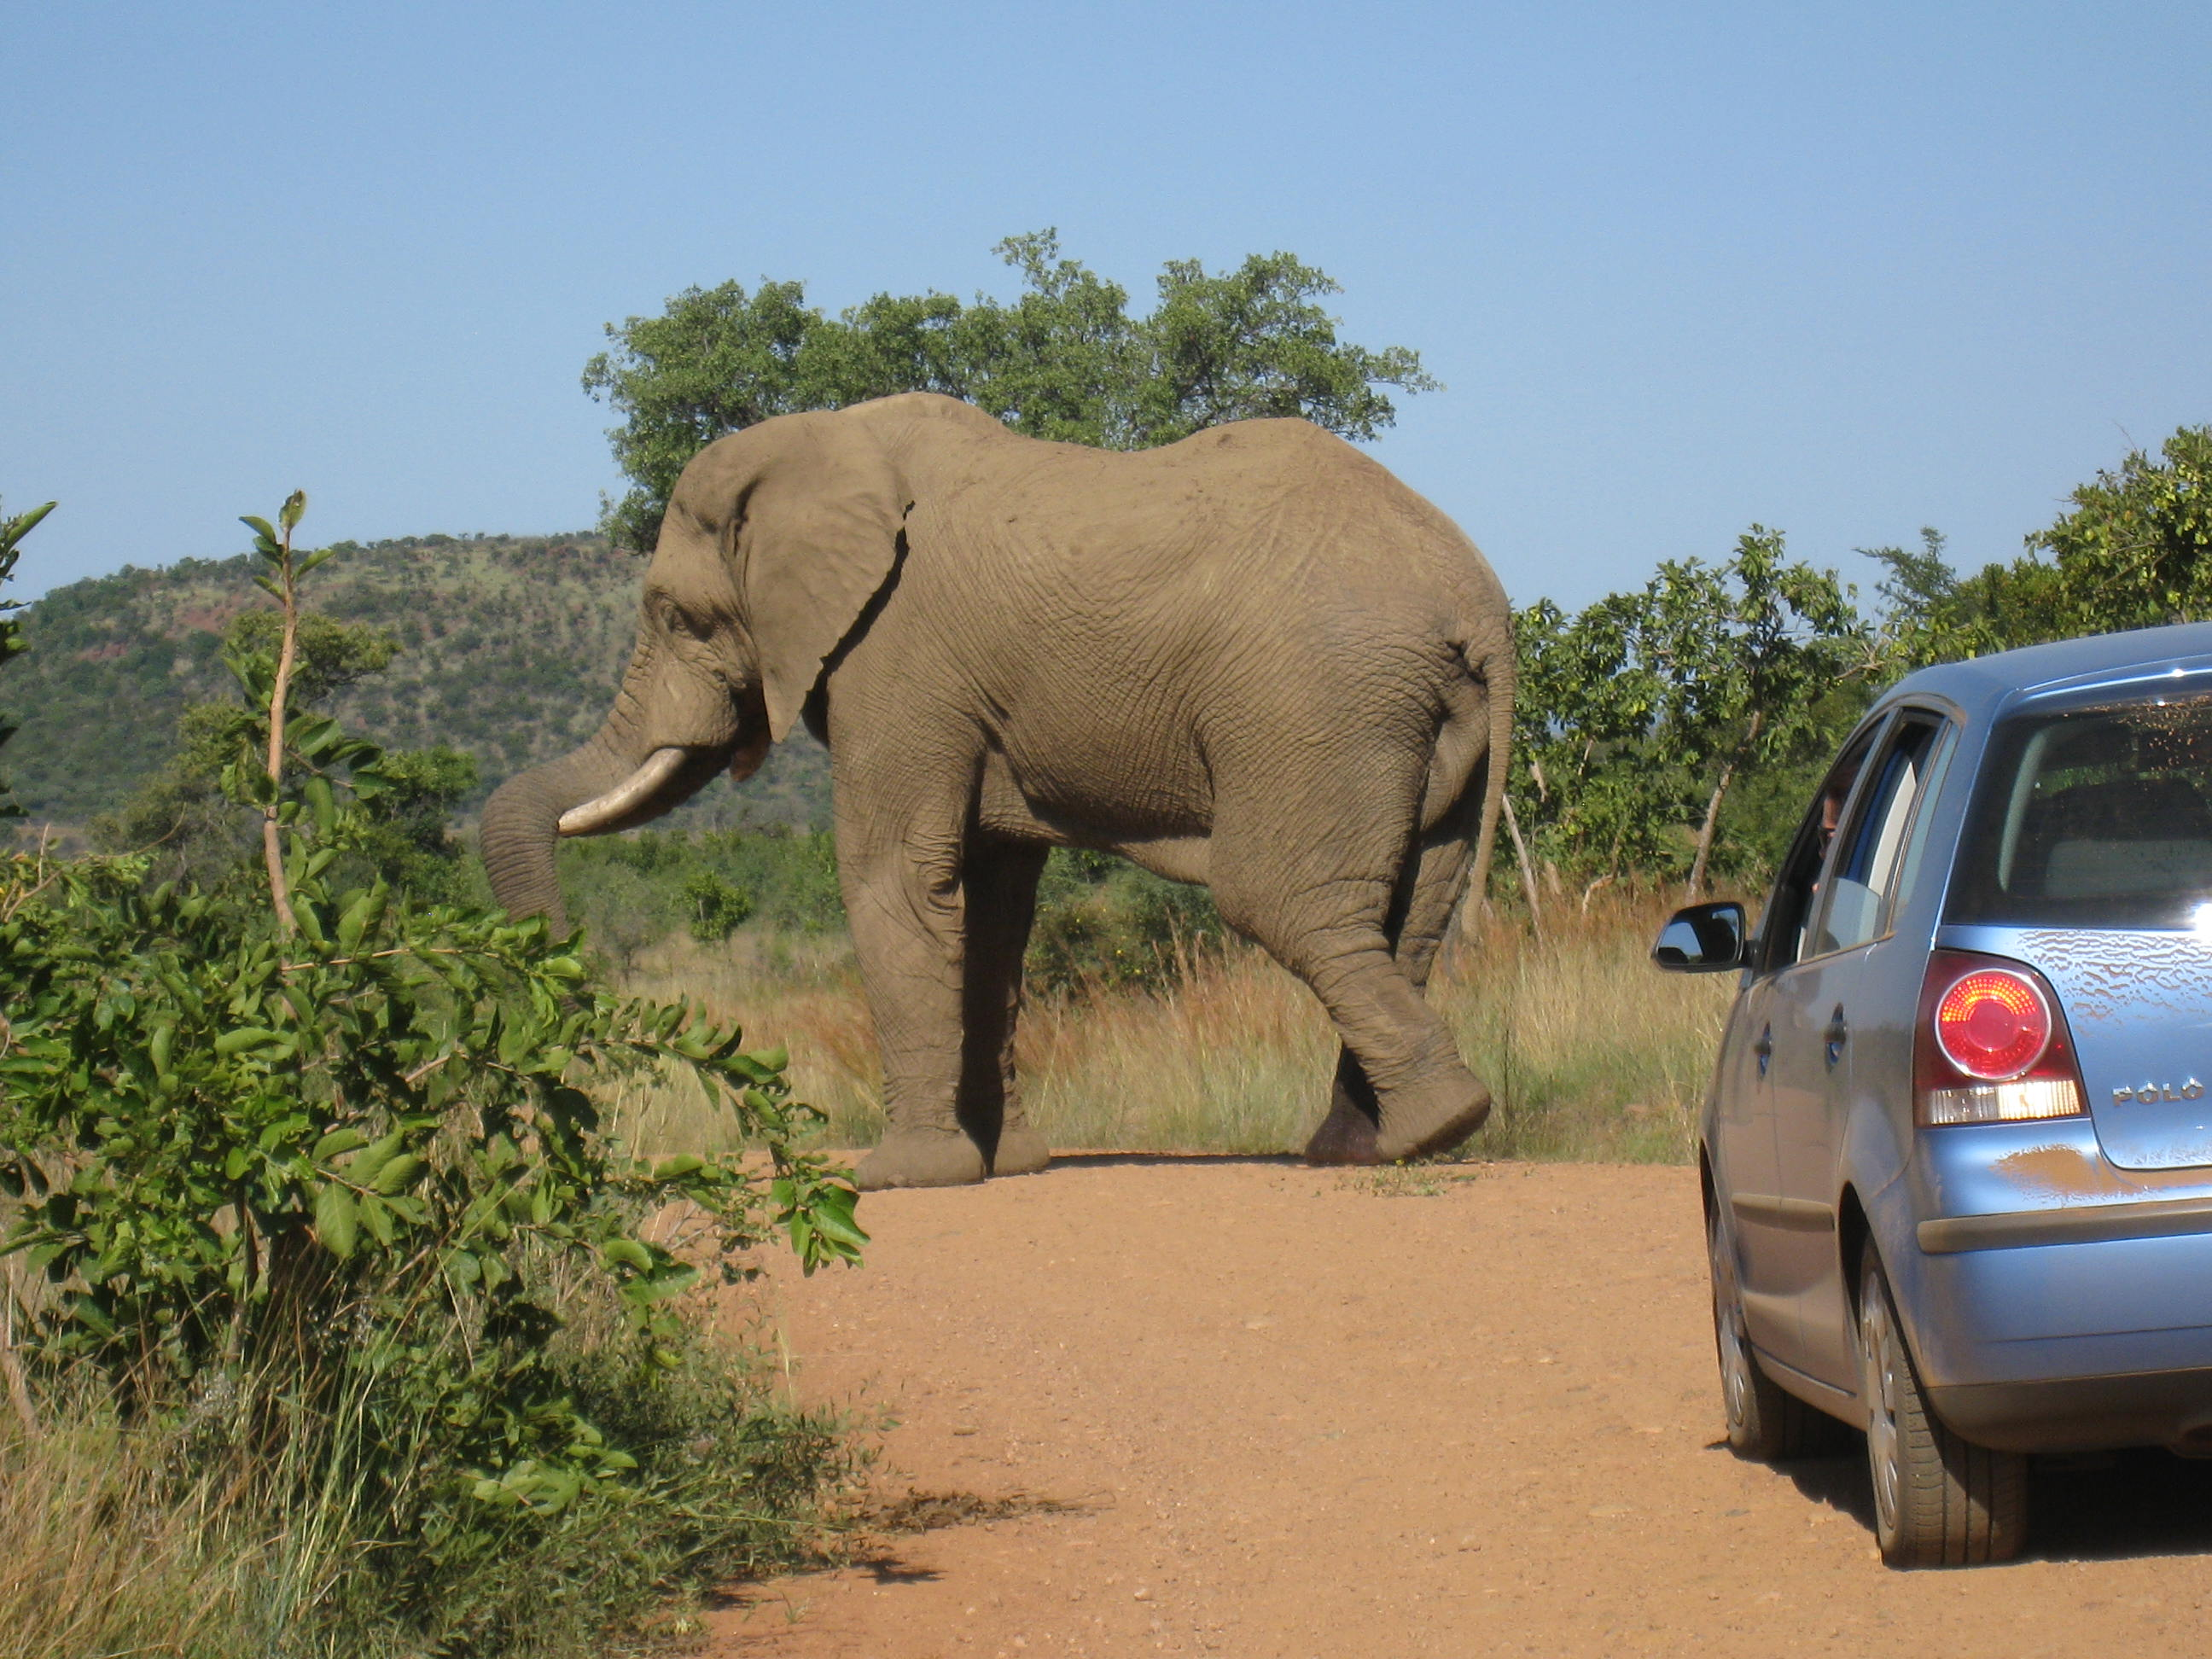 A Bull elephant in Pilanesburg National Park. Not going anywhere.